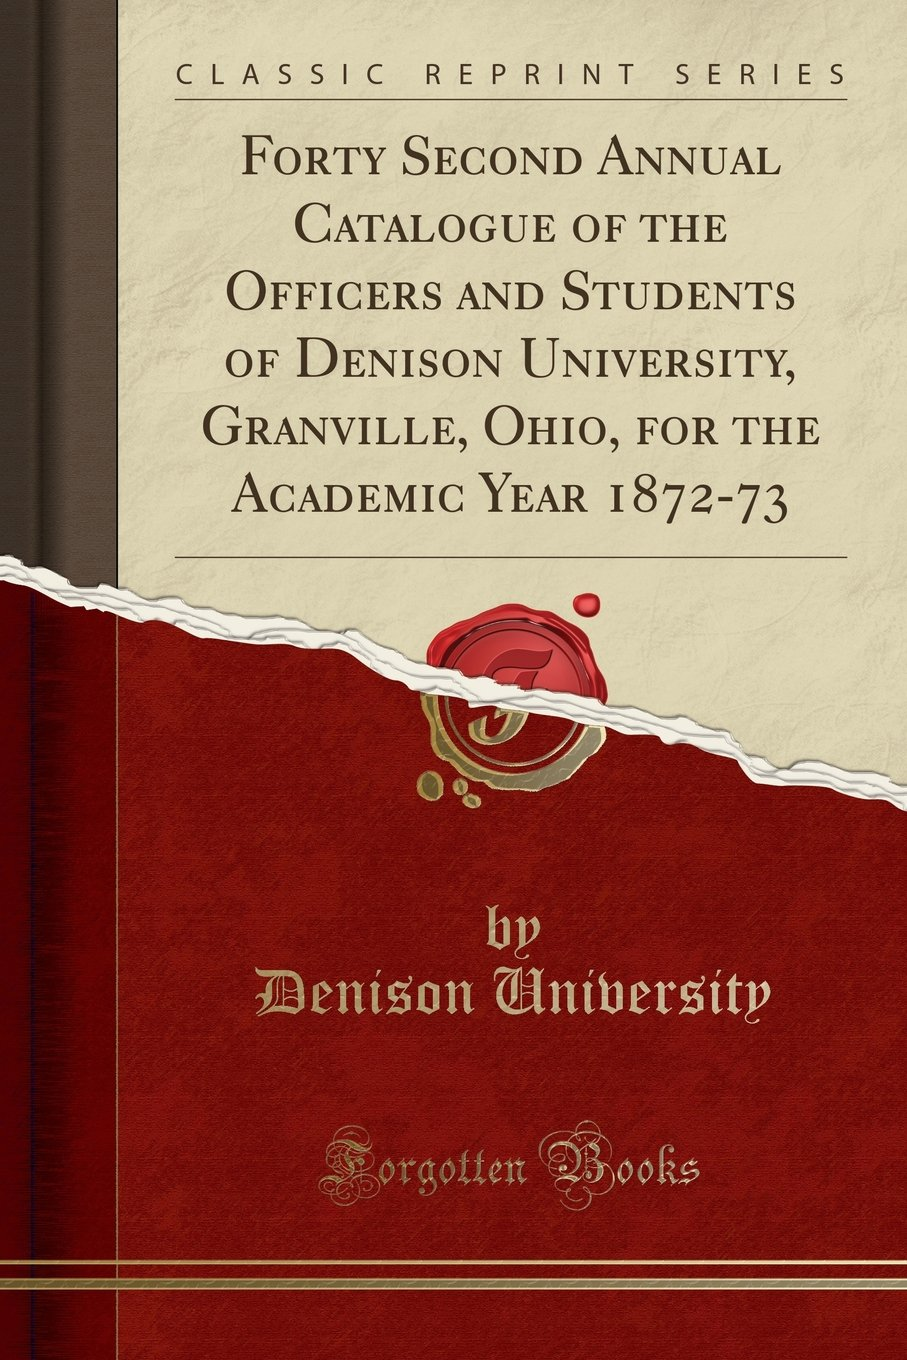 Download Forty Second Annual Catalogue of the Officers and Students of Denison University, Granville, Ohio, for the Academic Year 1872-73 (Classic Reprint) PDF